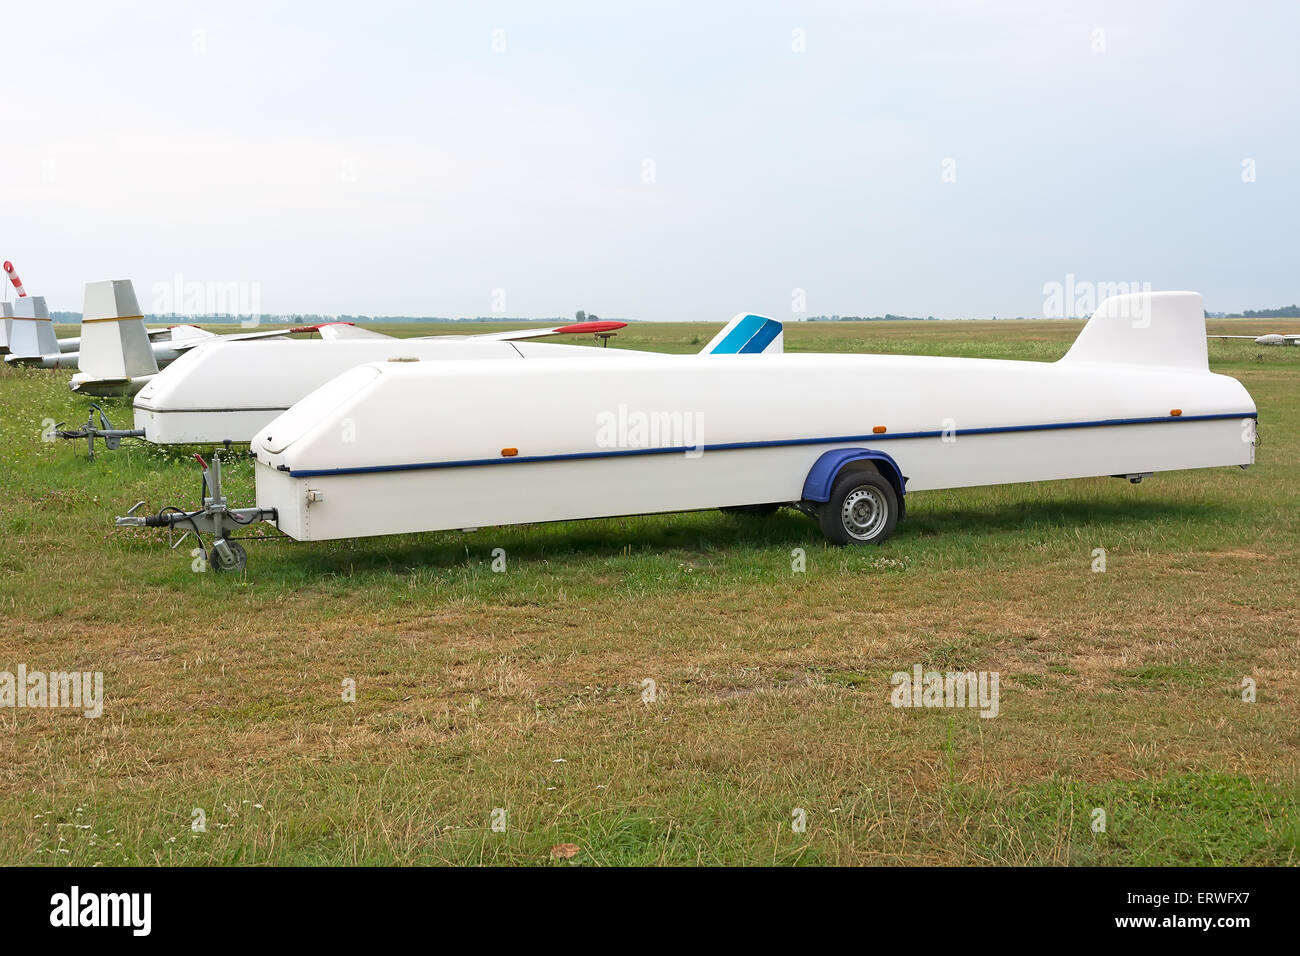 Trailer for transportation glider standing on the airfield. Picture taken on a cloudy day. Overcast. - Stock Image